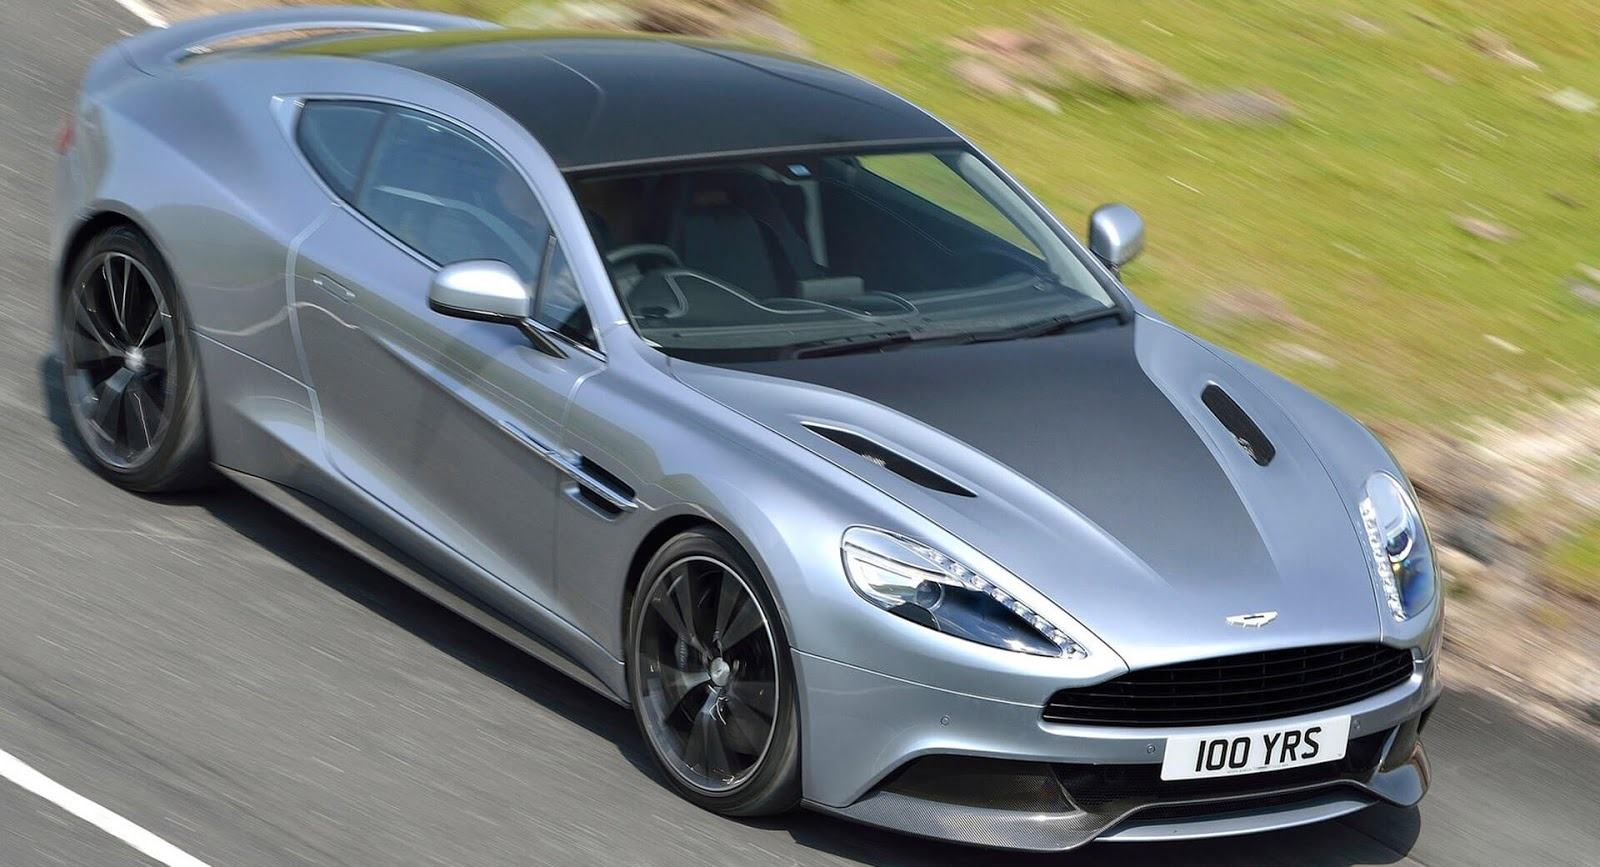 Aston Martin issues rare recall